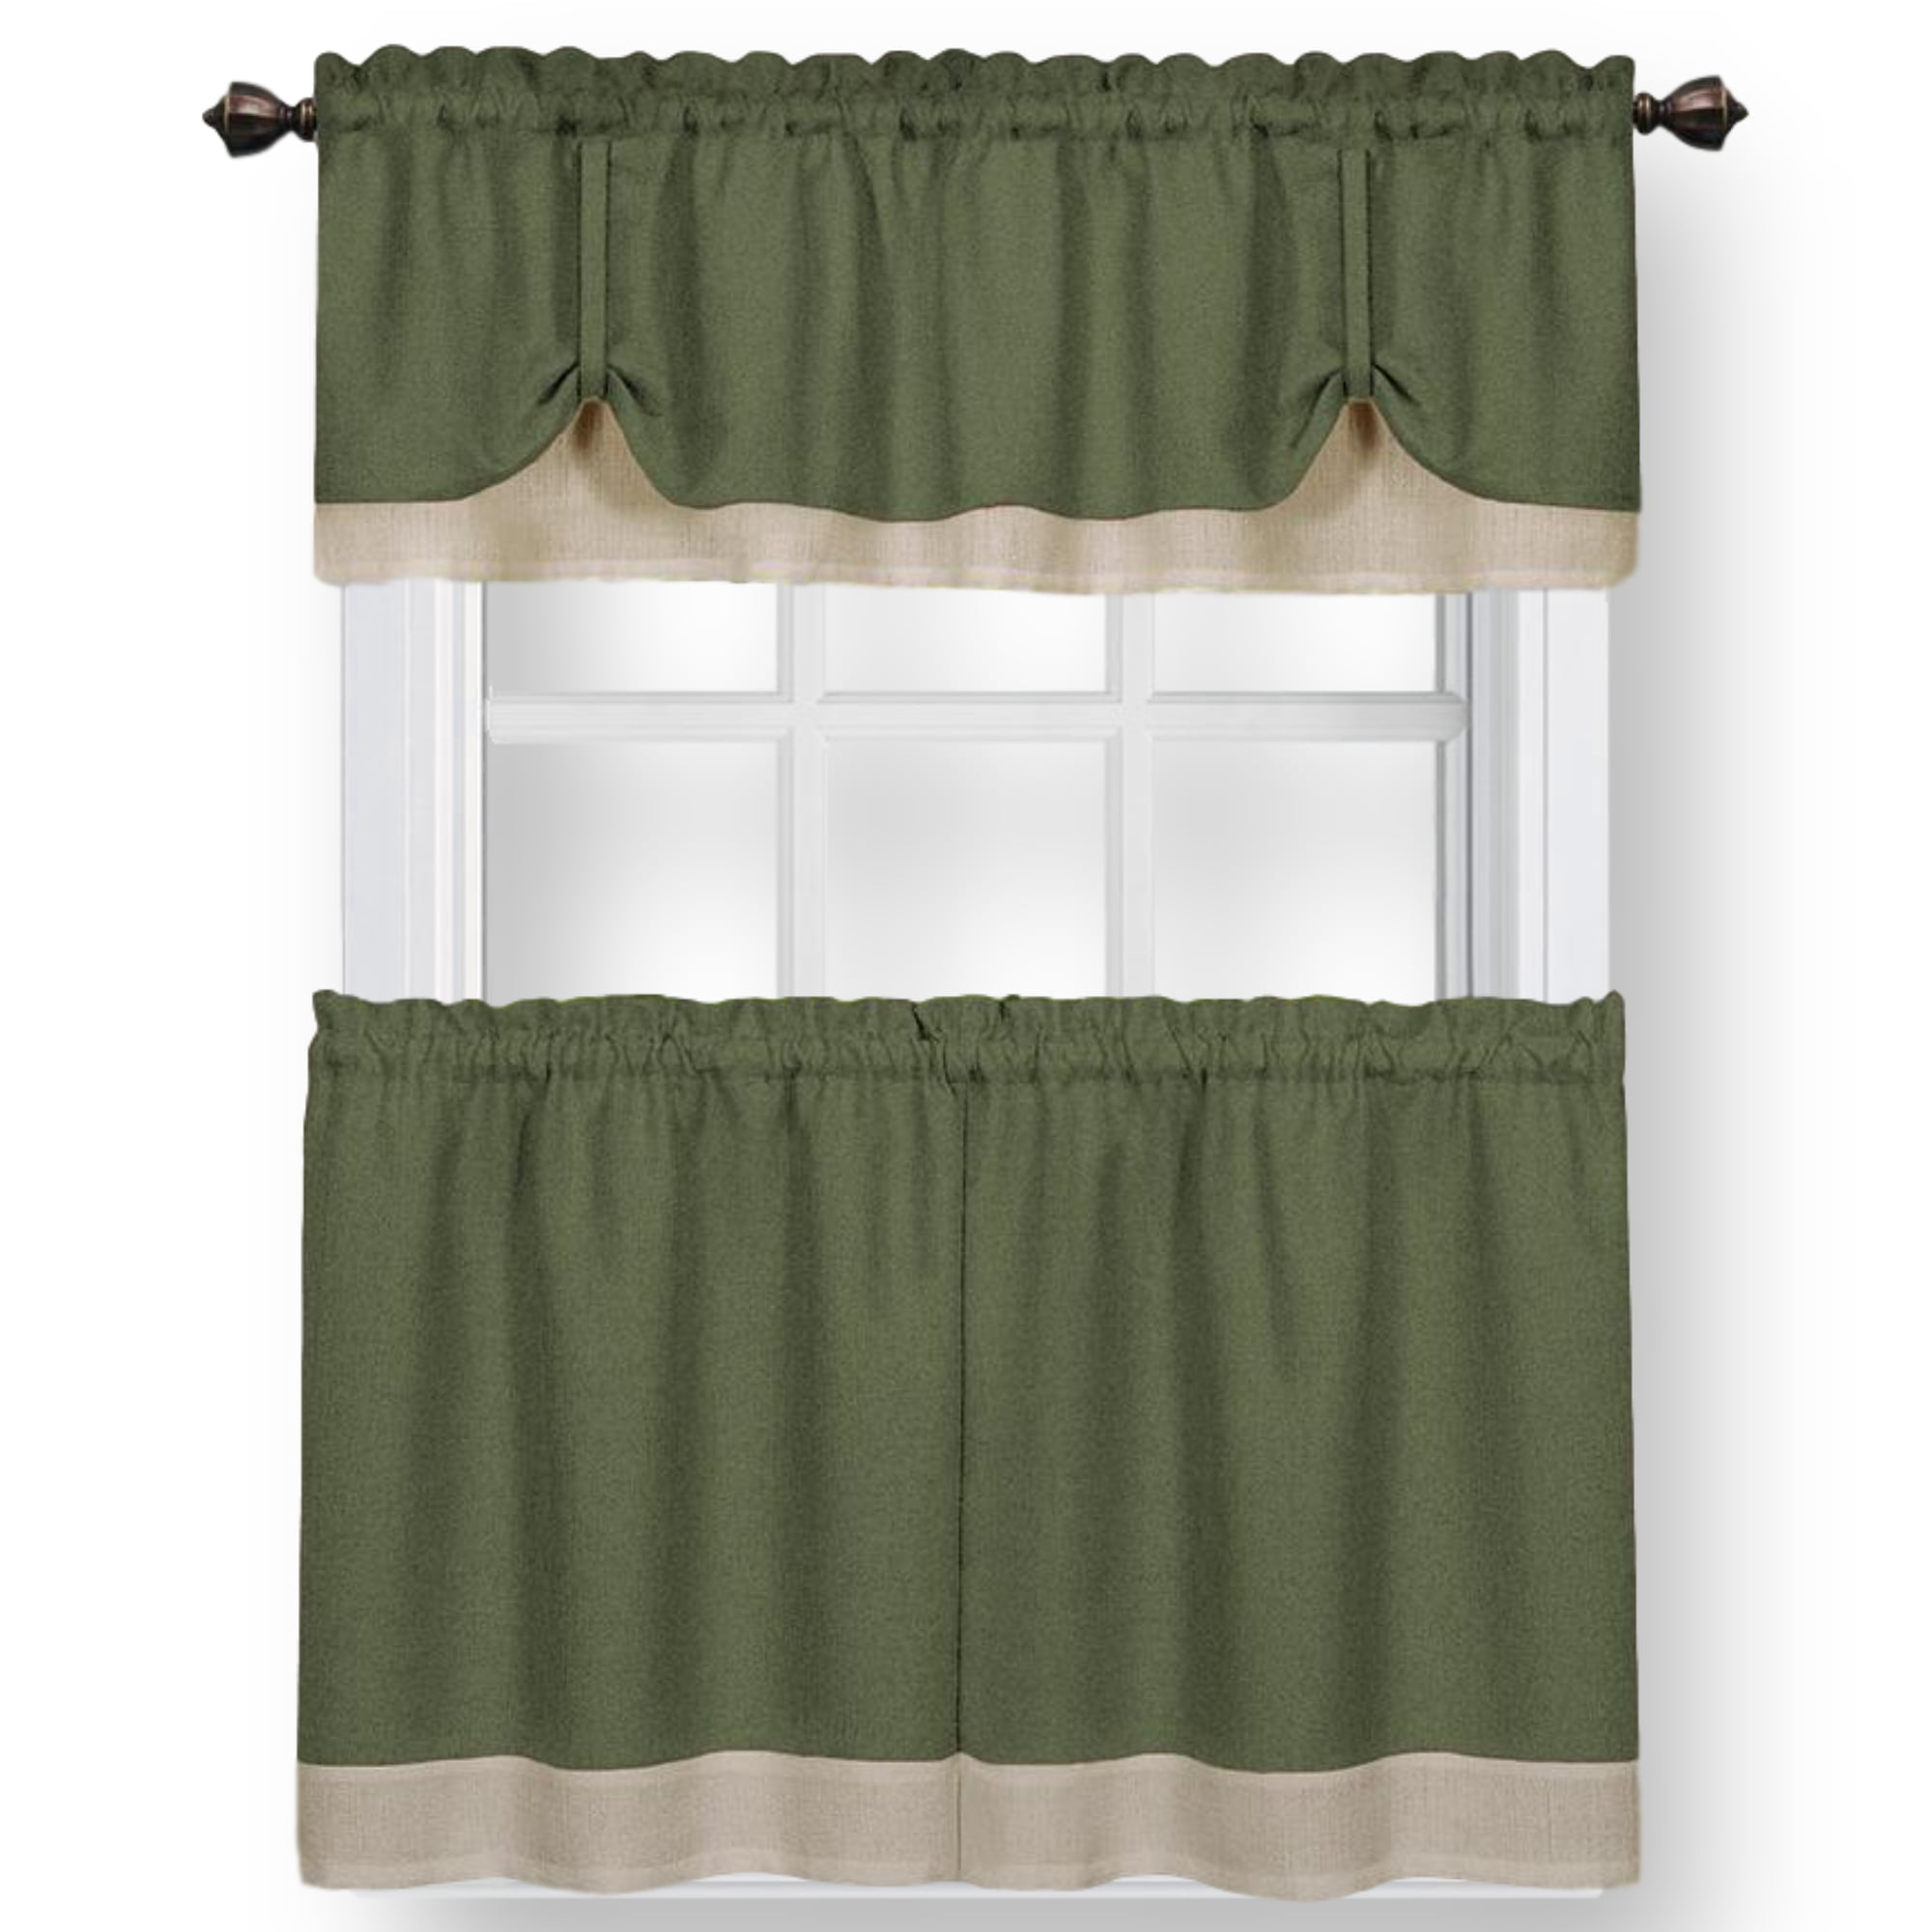 Woven Trends Two Tone Window Curtain Tier Pair Valance Set Double Layer Small Window Curtains For Kitchen Living Room And Kitchen Walmart Com Walmart Com,Ikea Customer Service Usa Email